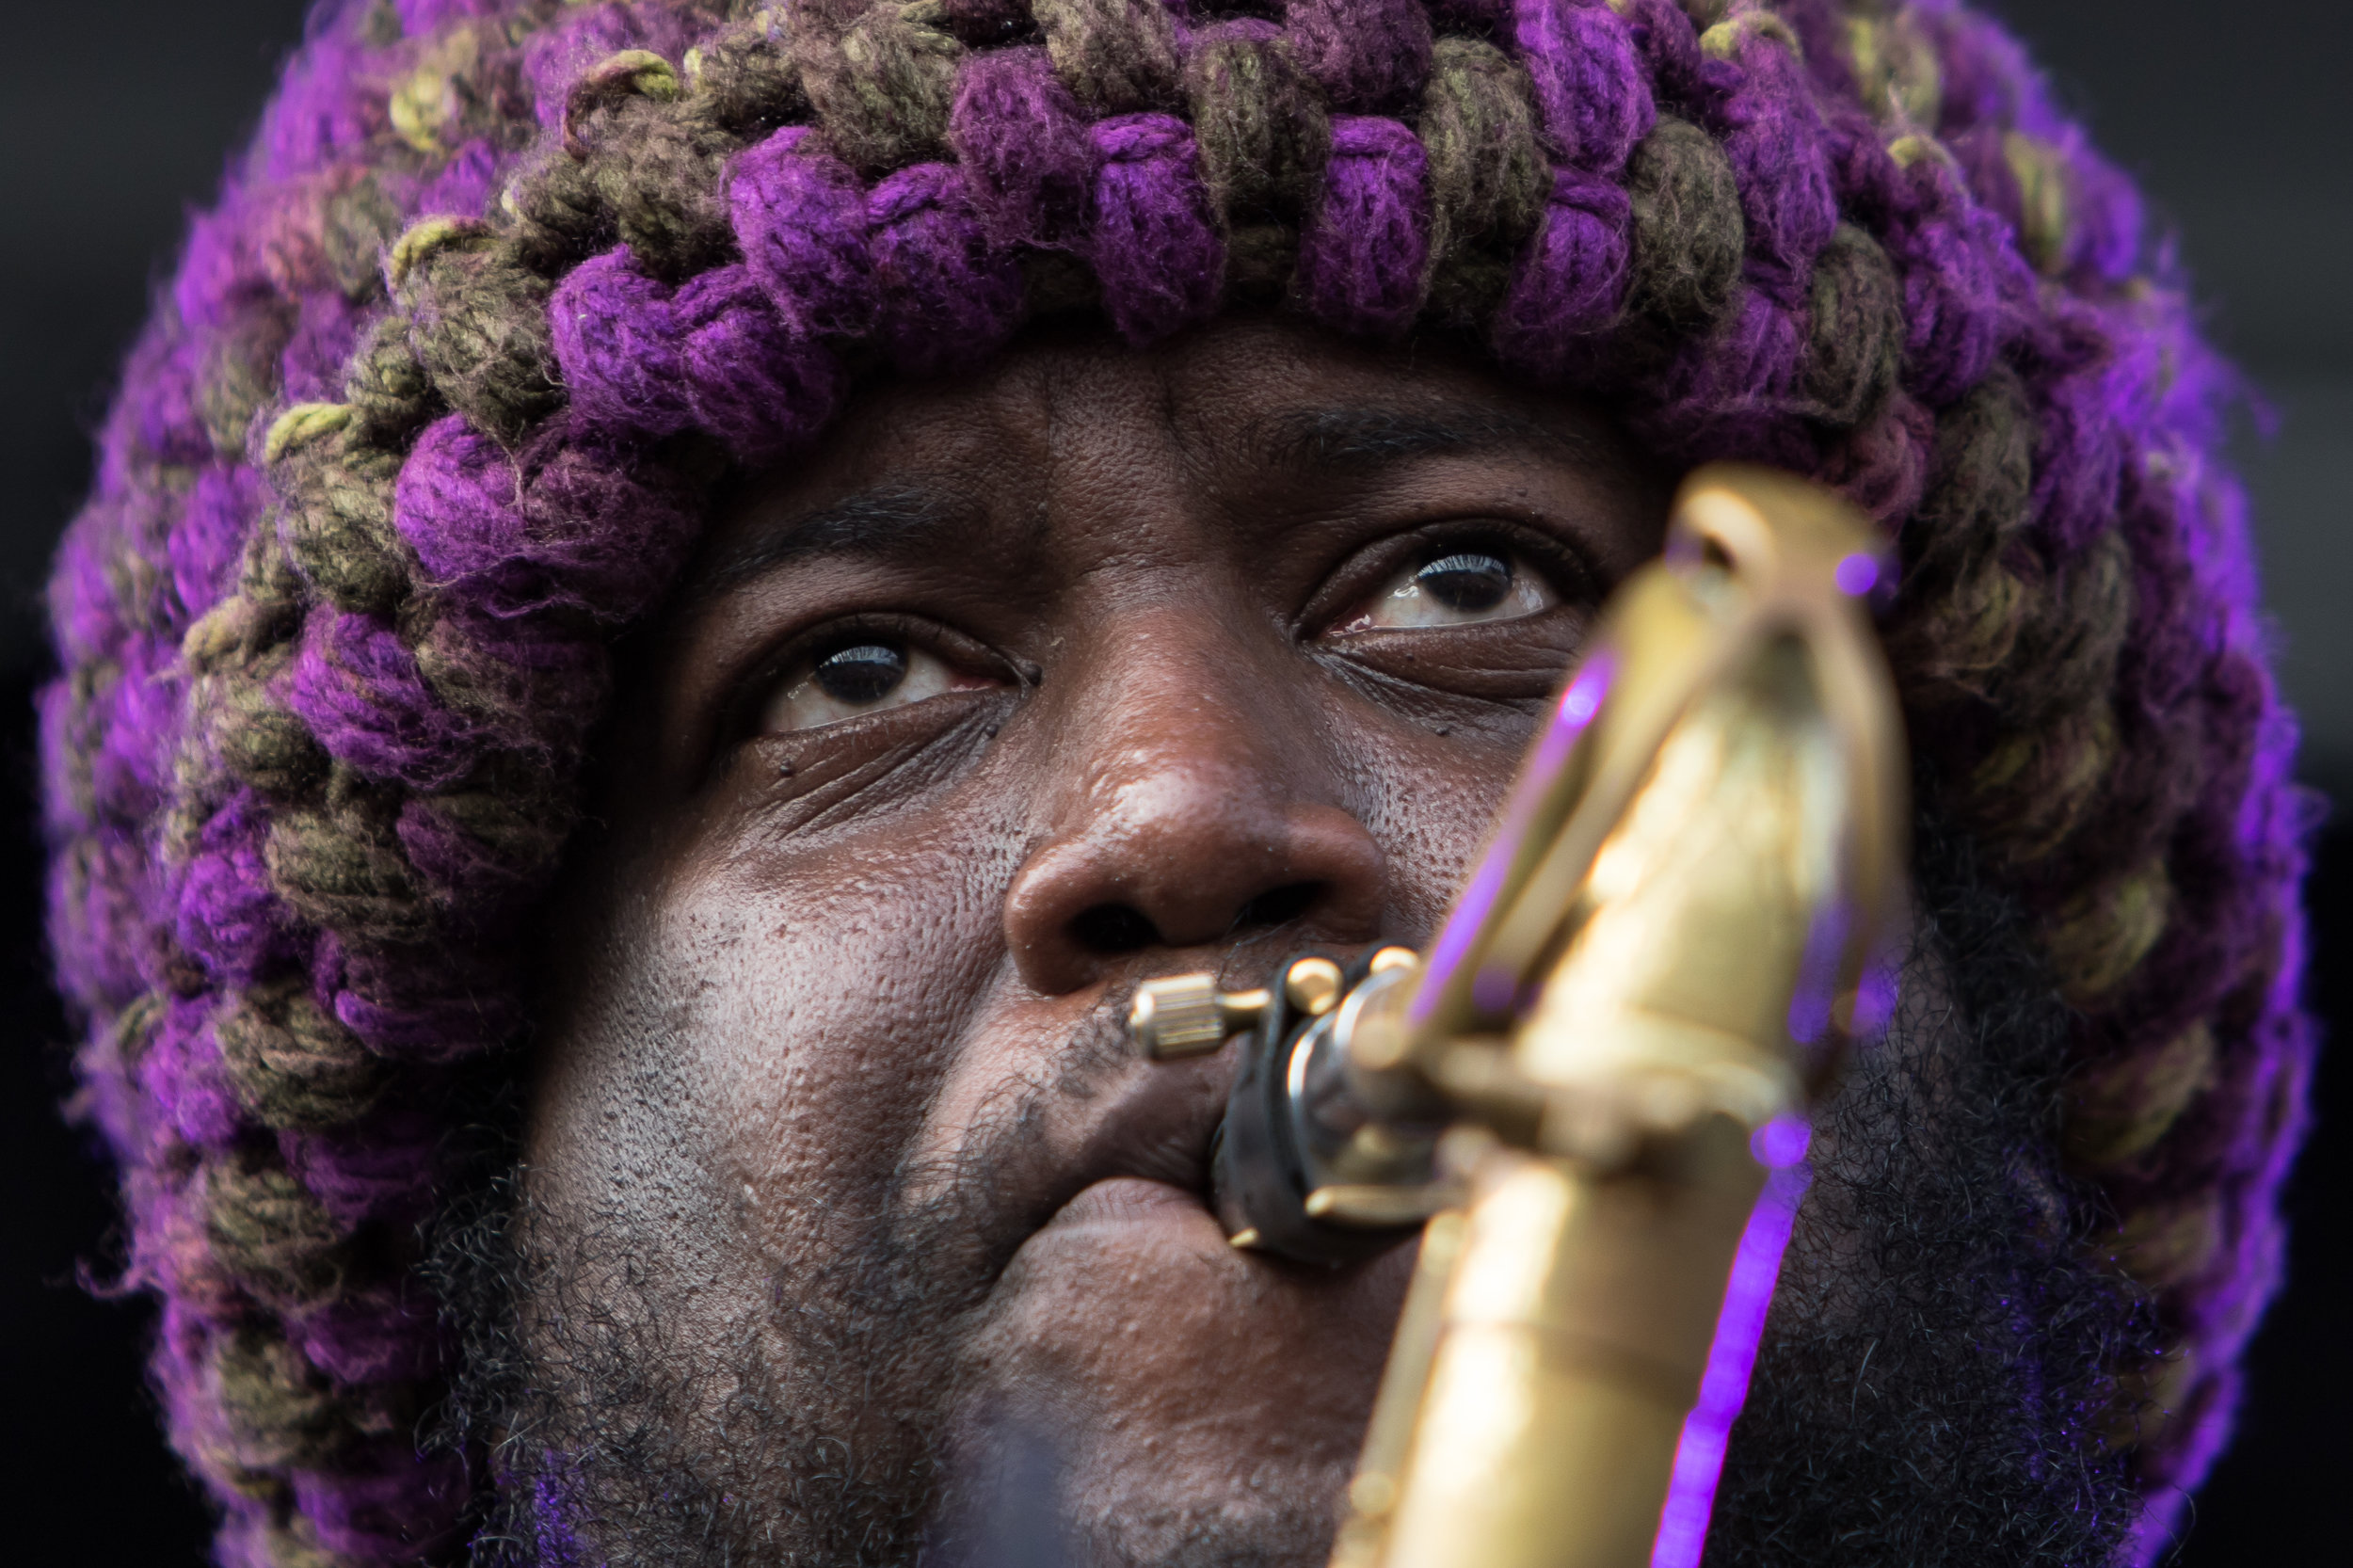 Tenor saxophone player Kamasi Washington plays for a sold-out crowd during Rock the Garden in Minneapolis, Minn. on June 16, 2018. (Lacey Young, The Current)